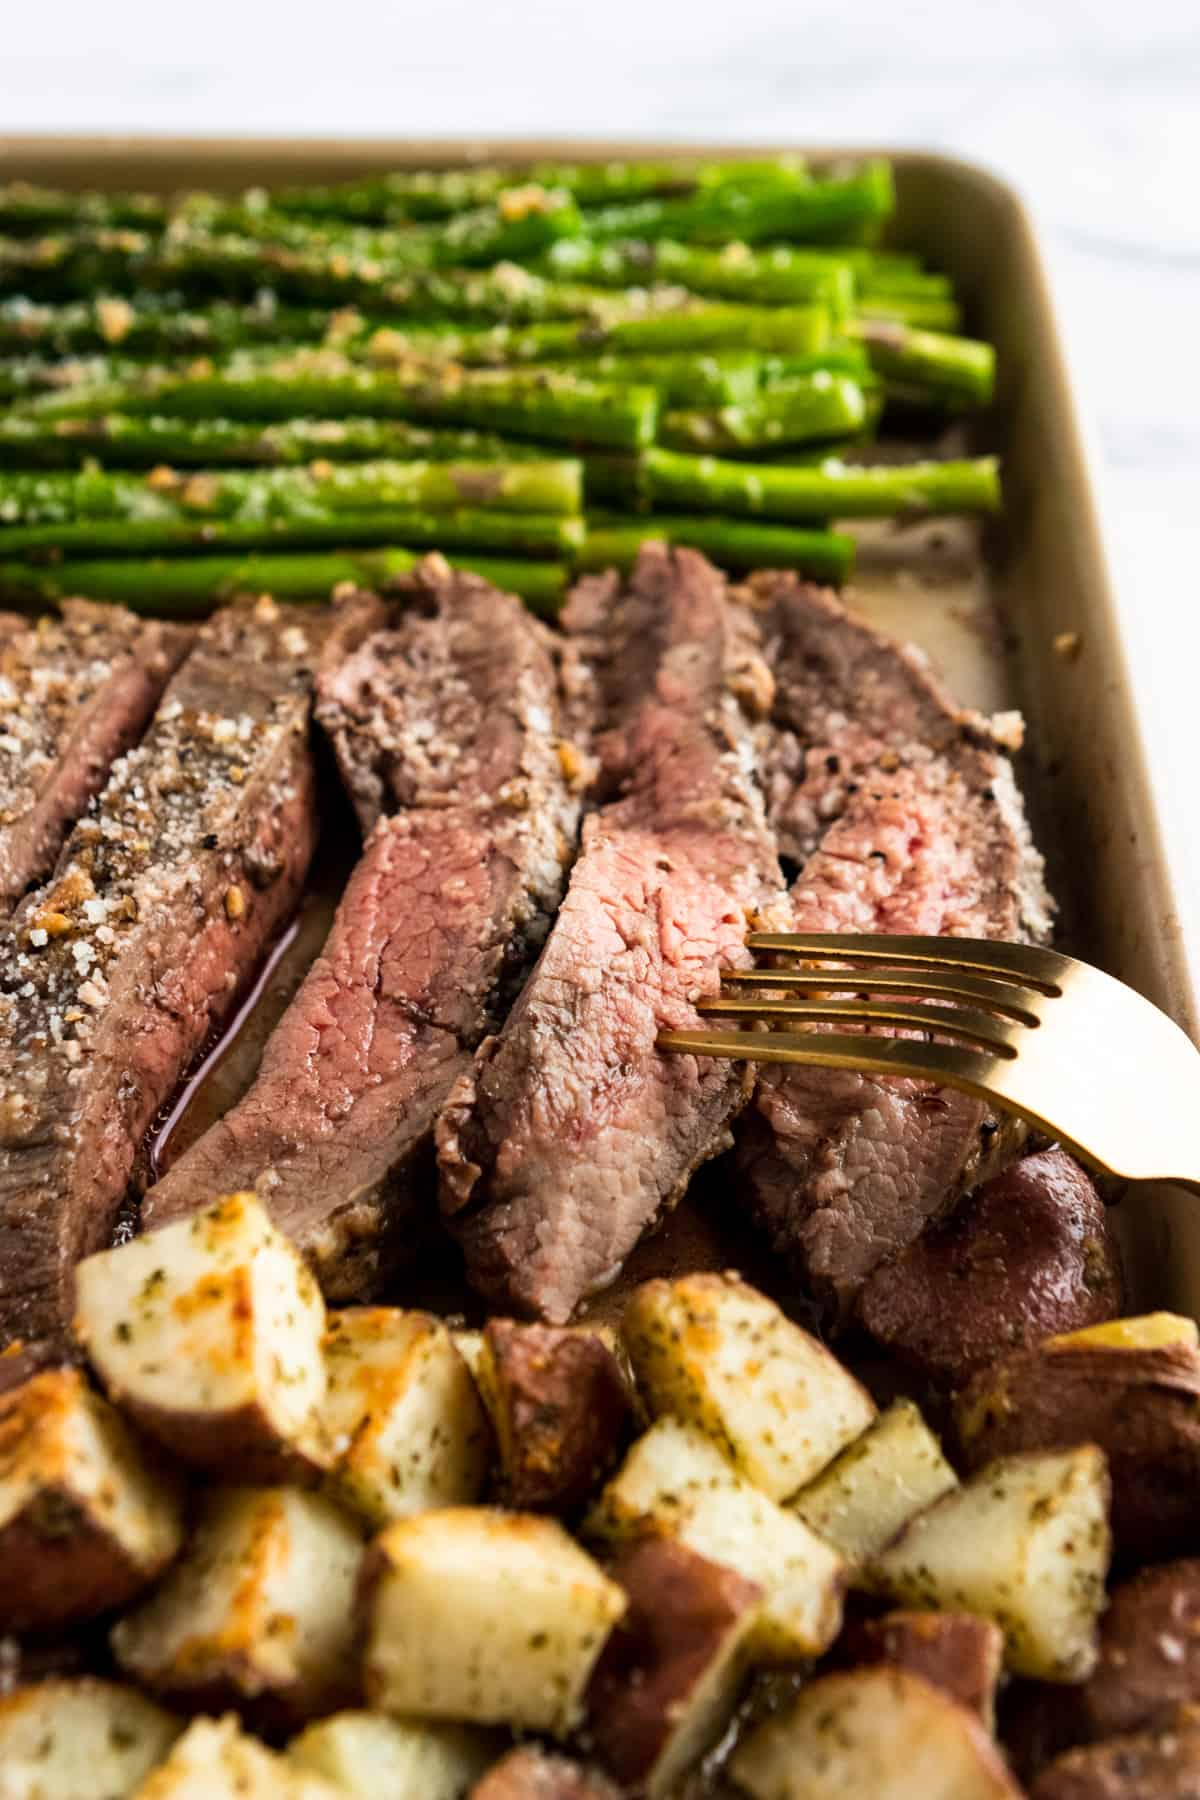 Parmesan crusted Flank steak sliced on sheet pan with fork.